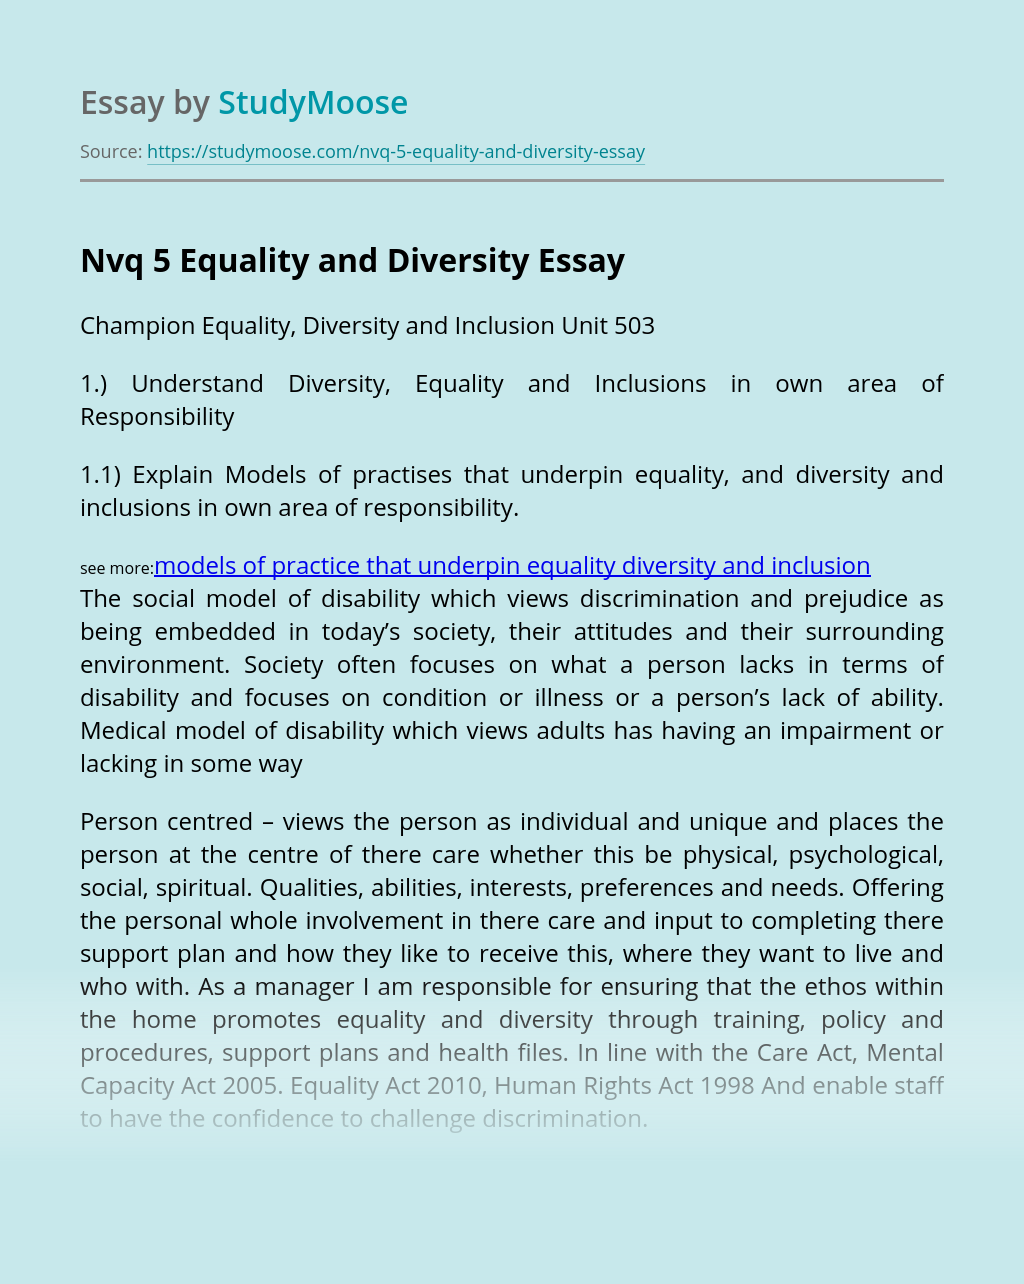 Nvq 5 Equality and Diversity